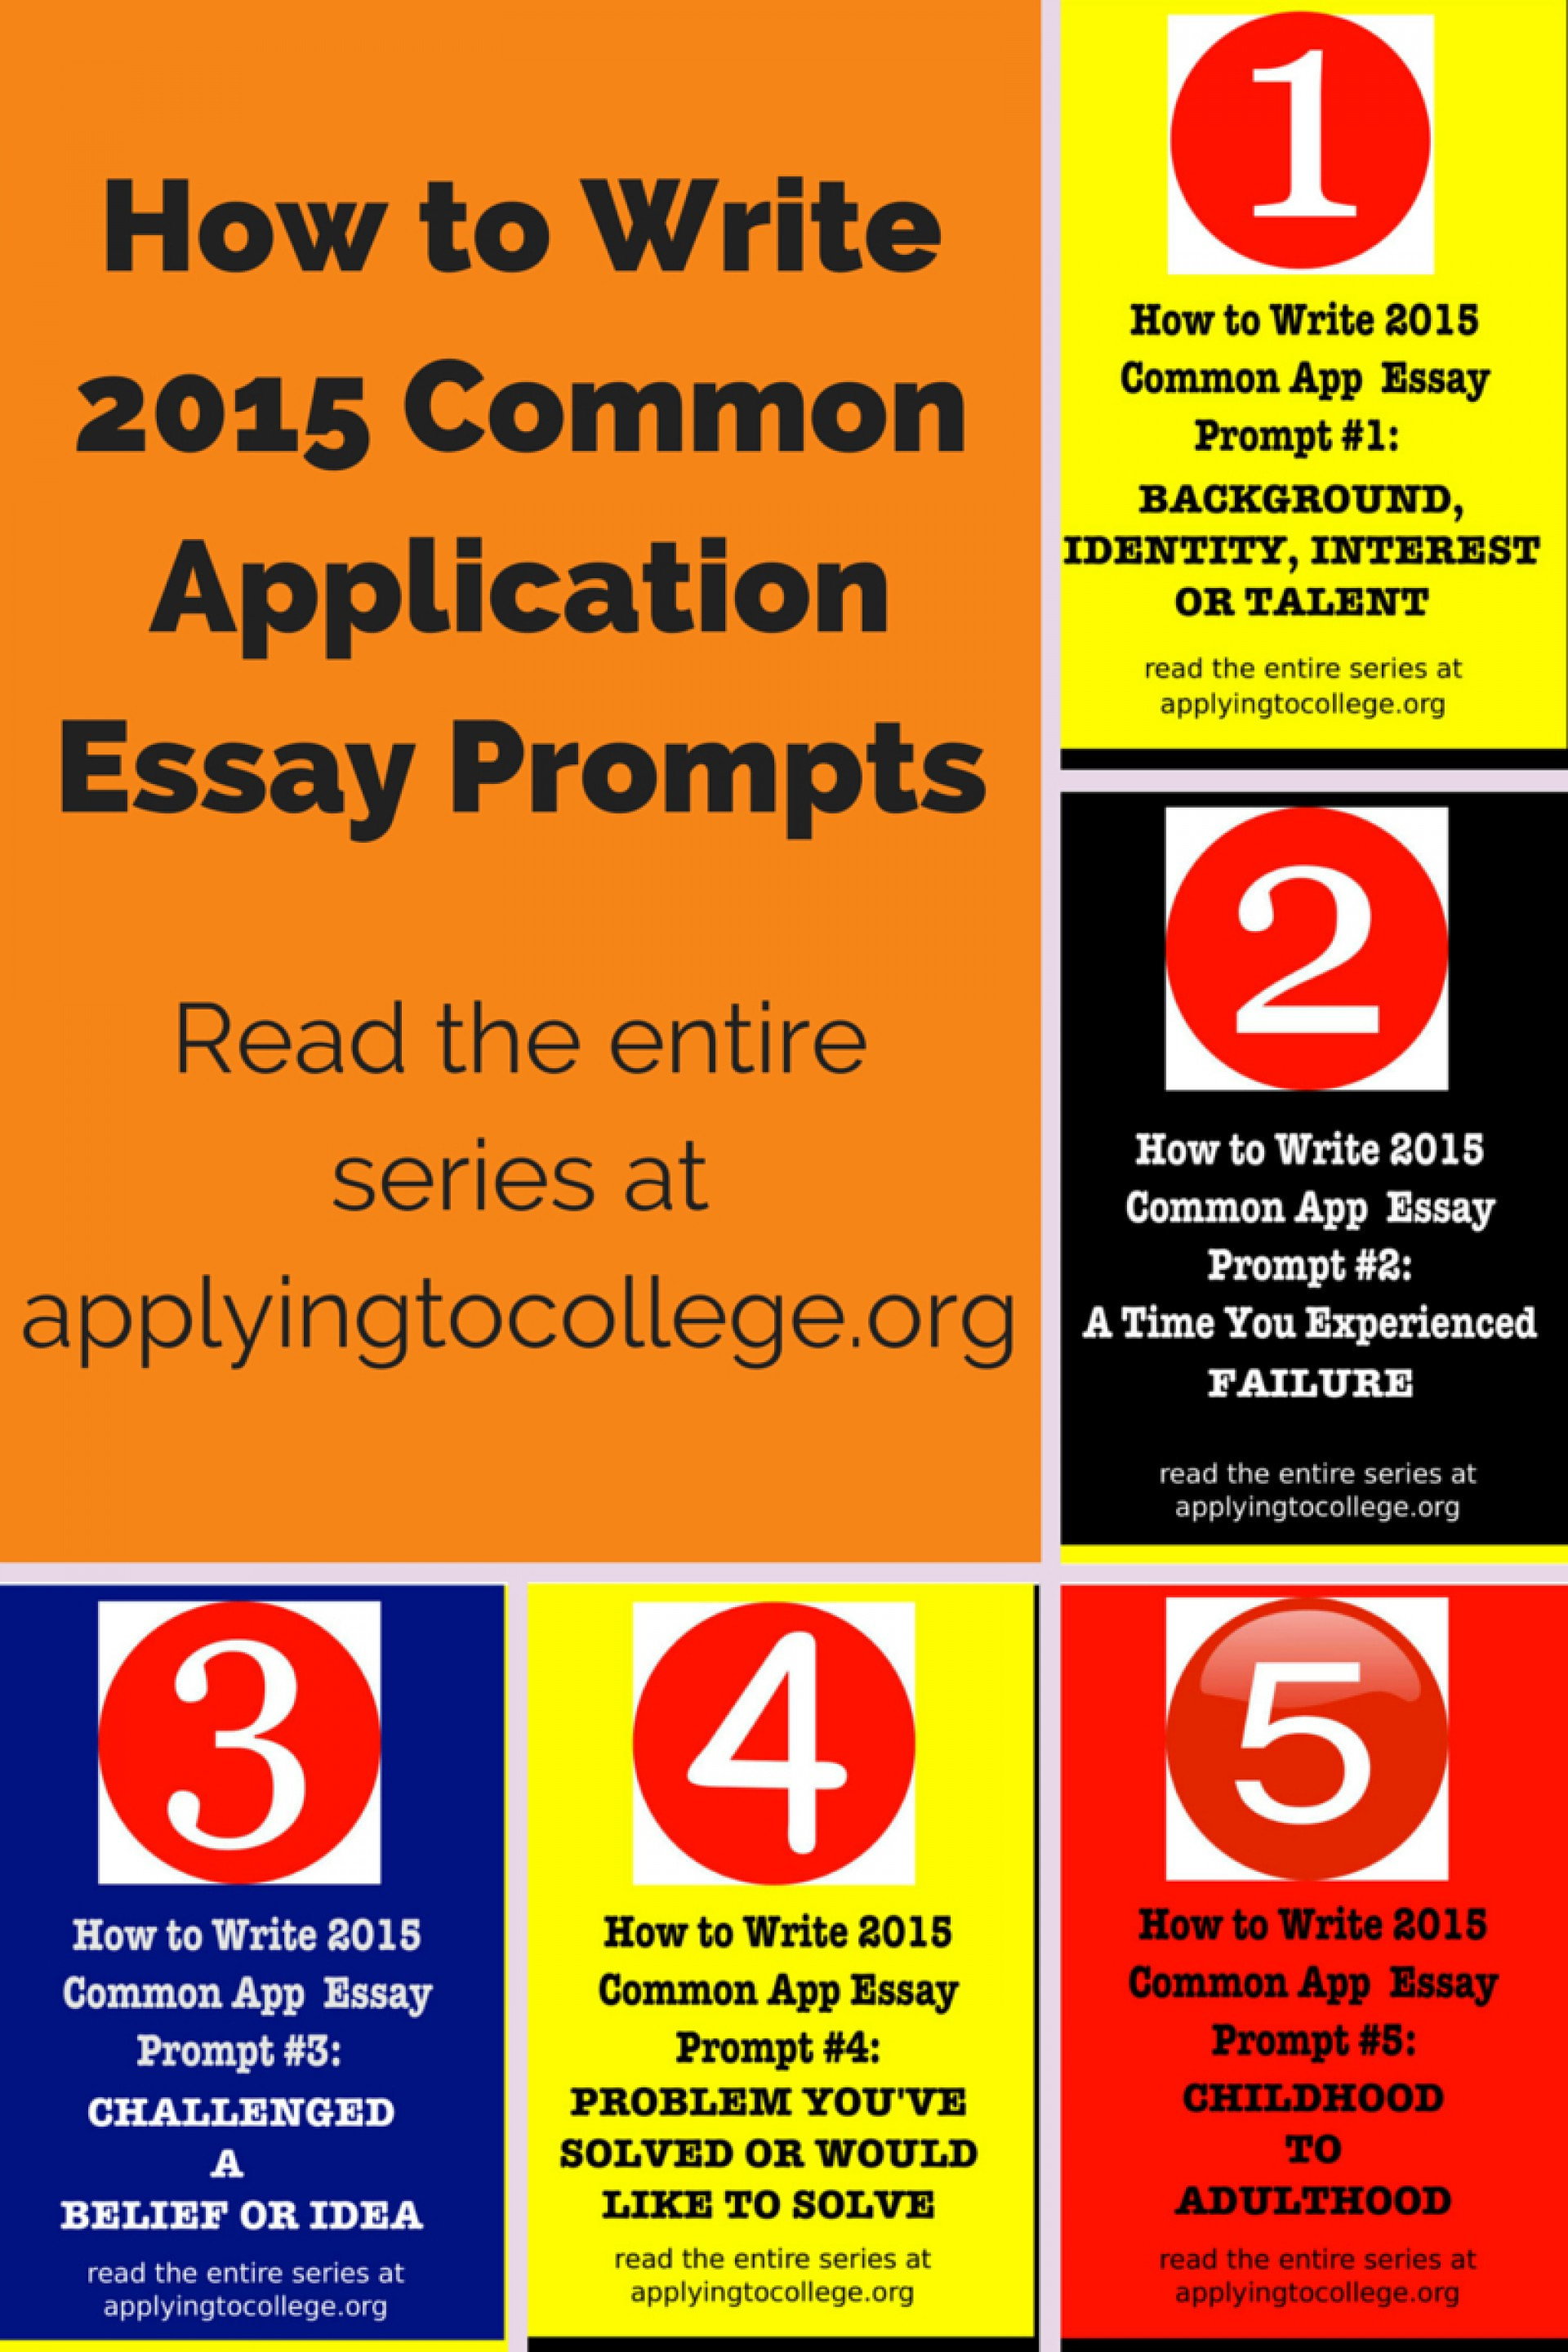 011 Essay Example Common App Prompt How To Write Application Prompts Unusual 1 Examples 3 4 1920